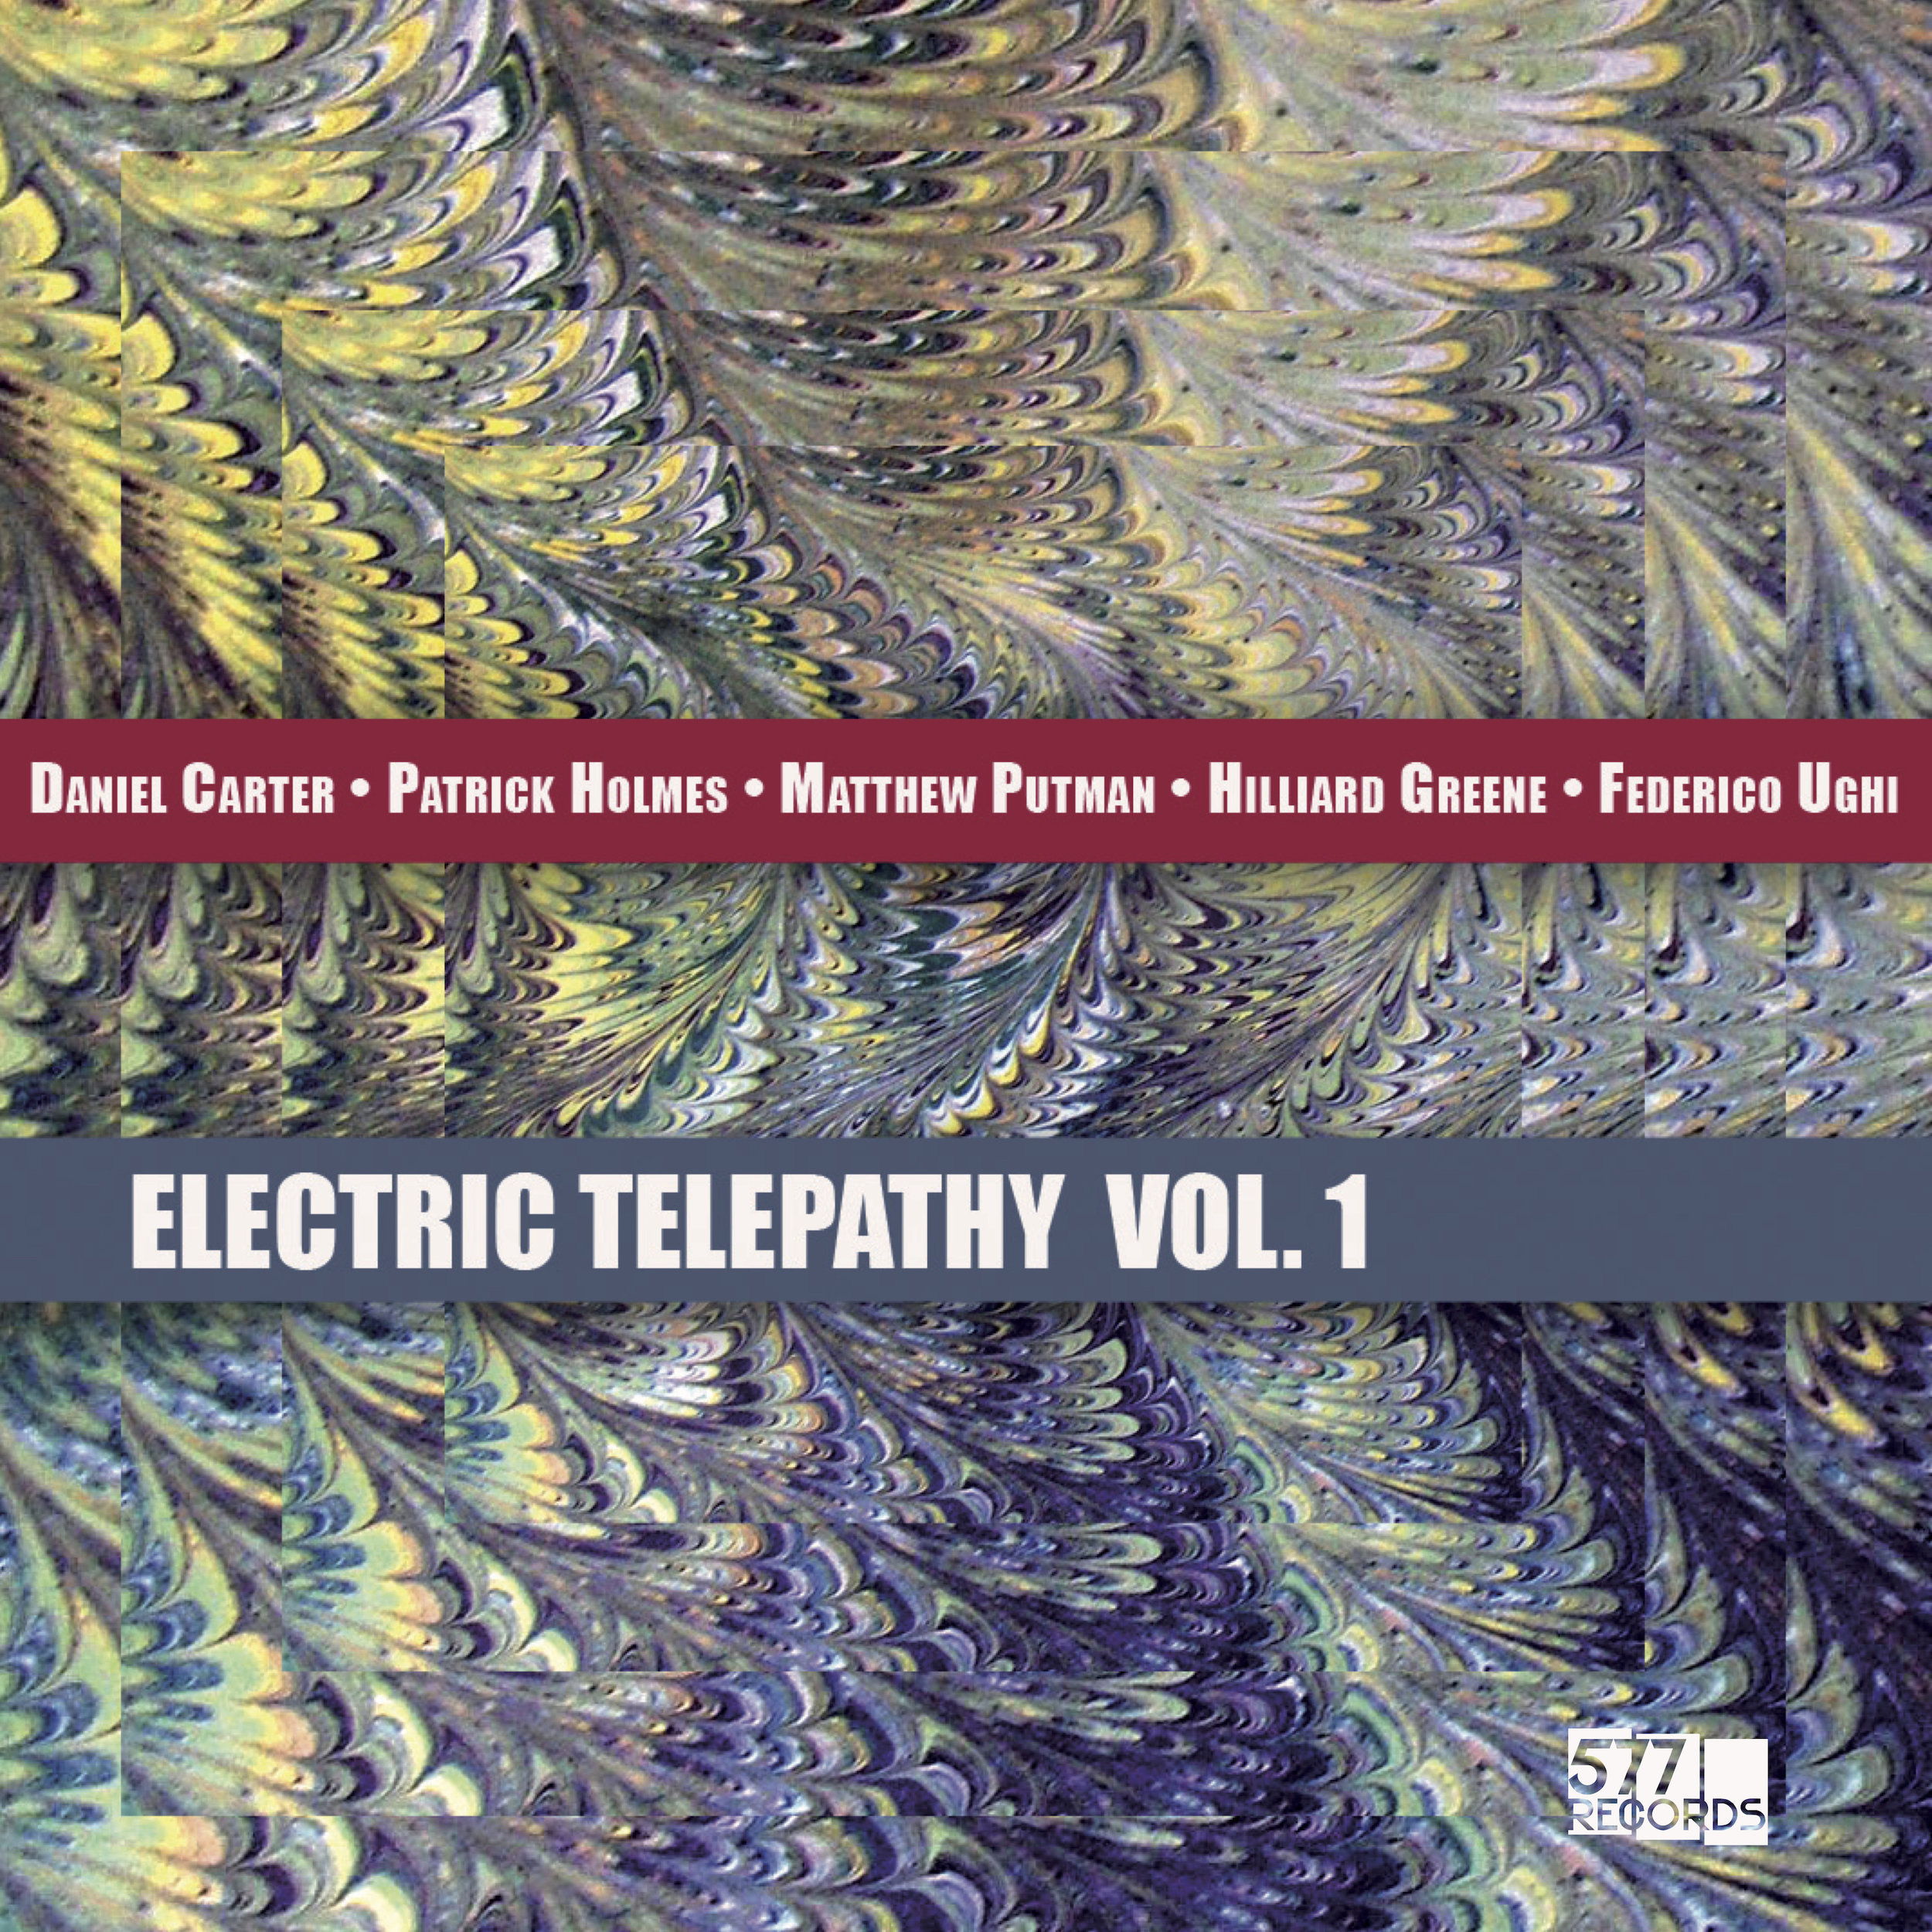 DANIEL CARTER, PATRICK HOLMES, MATTHEW PUTMAN, HILLIARD GREENE, FEDERICO UGHI ELECTRIC TELEPATHY VOL.1